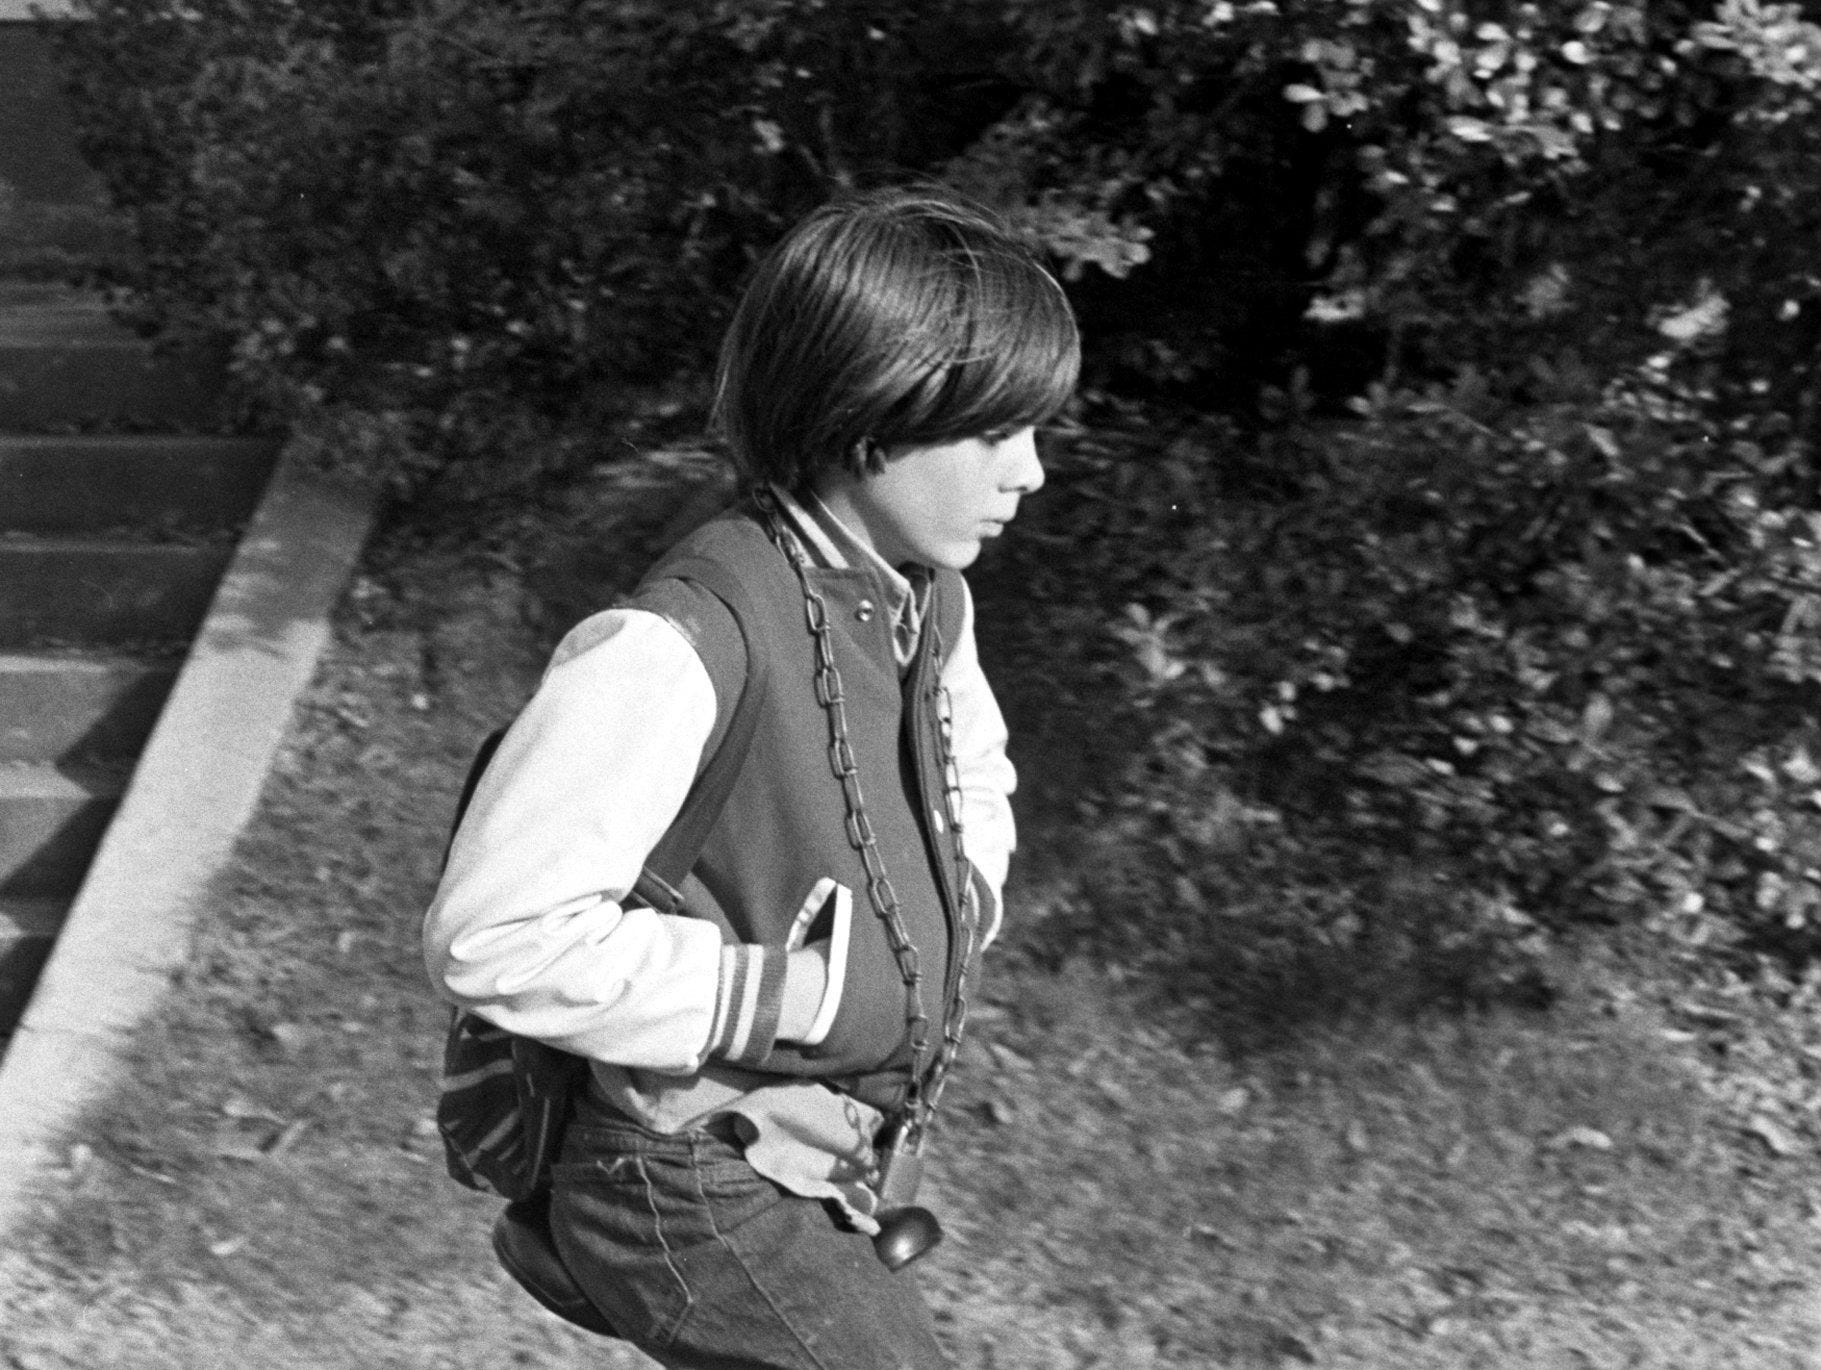 Thad Carlile, 11, of 1961 Cowden relies on his trusty unicycle to take him to school in January 1975, even when it rains. The chain around his neck is used to fasten it to the bicycle rack at Grace-St. Luke's Episcopal School, just in case. He is the son of Mr. and Mrs. Jim Carlile.